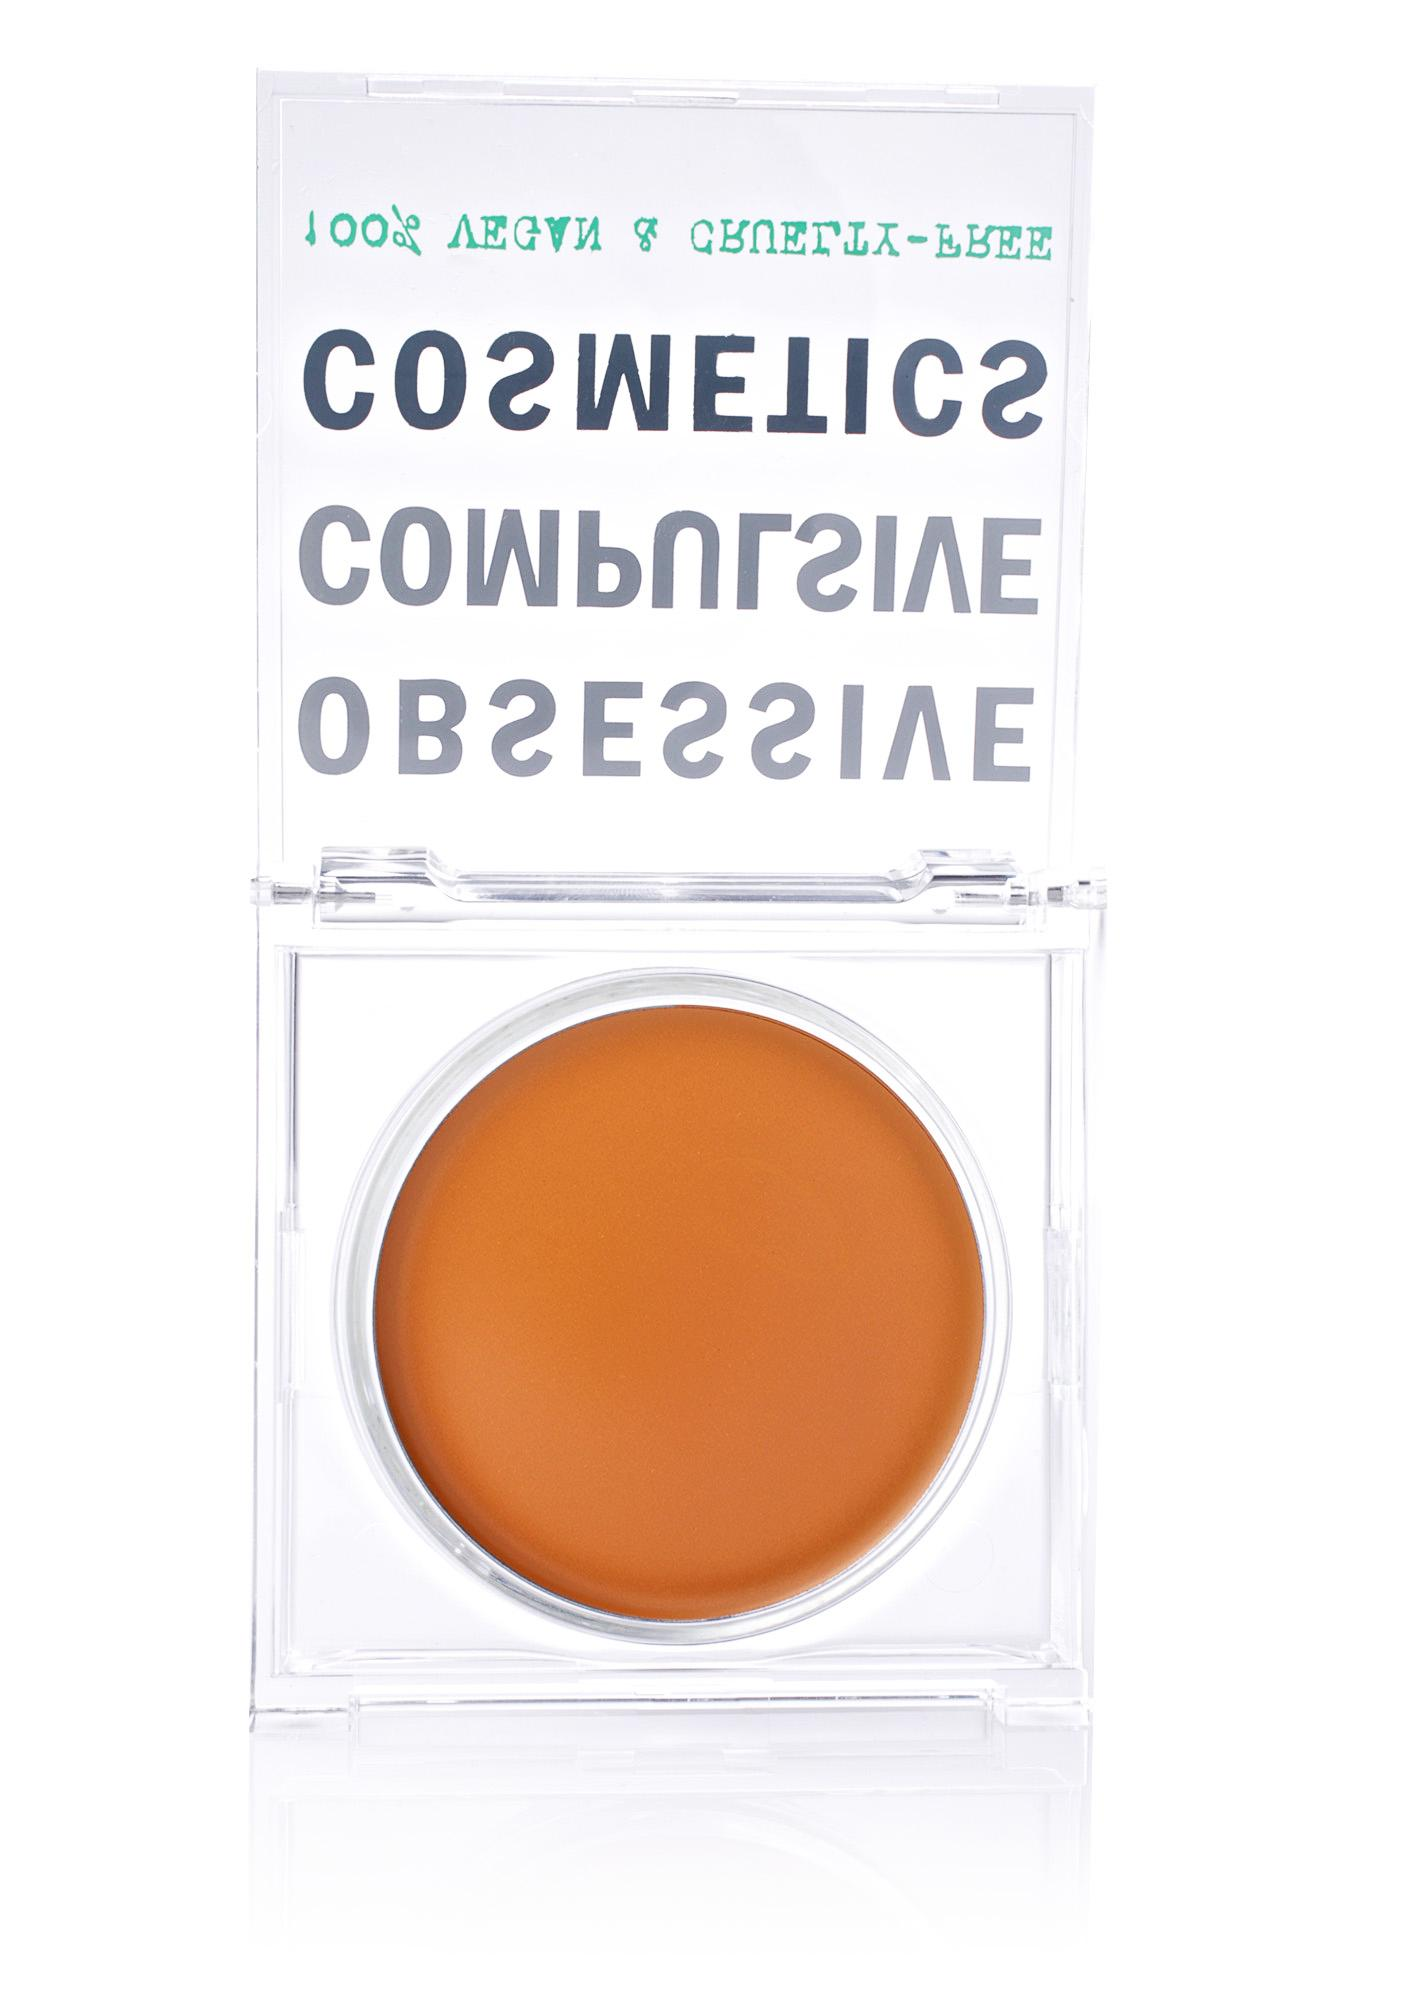 Obsessive Compulsive Cosmetics Y3 Skin Conceal